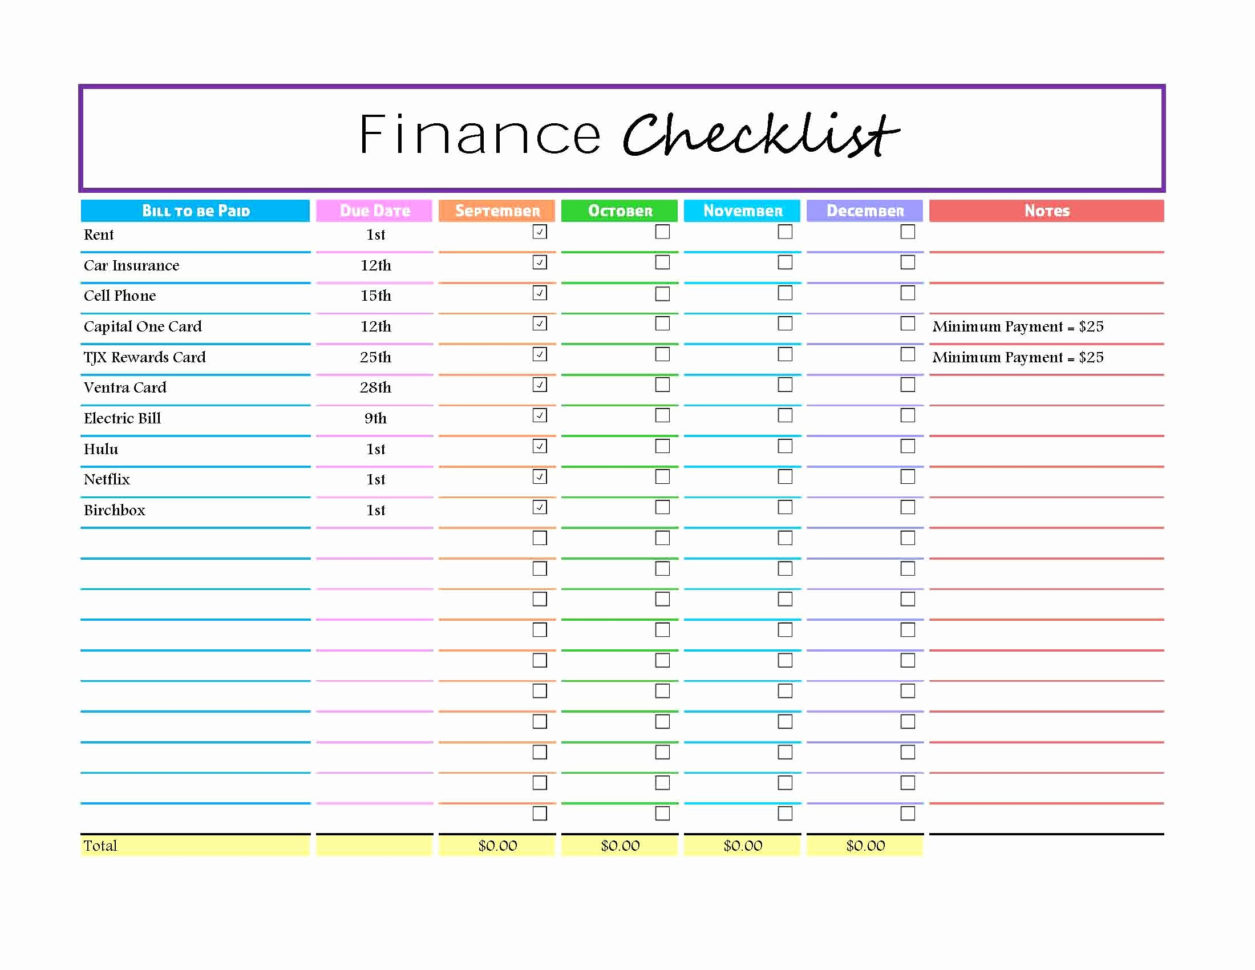 month end accounting checklist template monthly accounting close checklist template accounting month end checklist template excel monthly bookkeeping checklist template monthly accounting checklist template  45 New Image Of Accounting Month End Close Checklist | Resume Layout Within Monthly Accounting Checklist Template Monthly Accounting Checklist Template Spreadsheet Templates for Busines